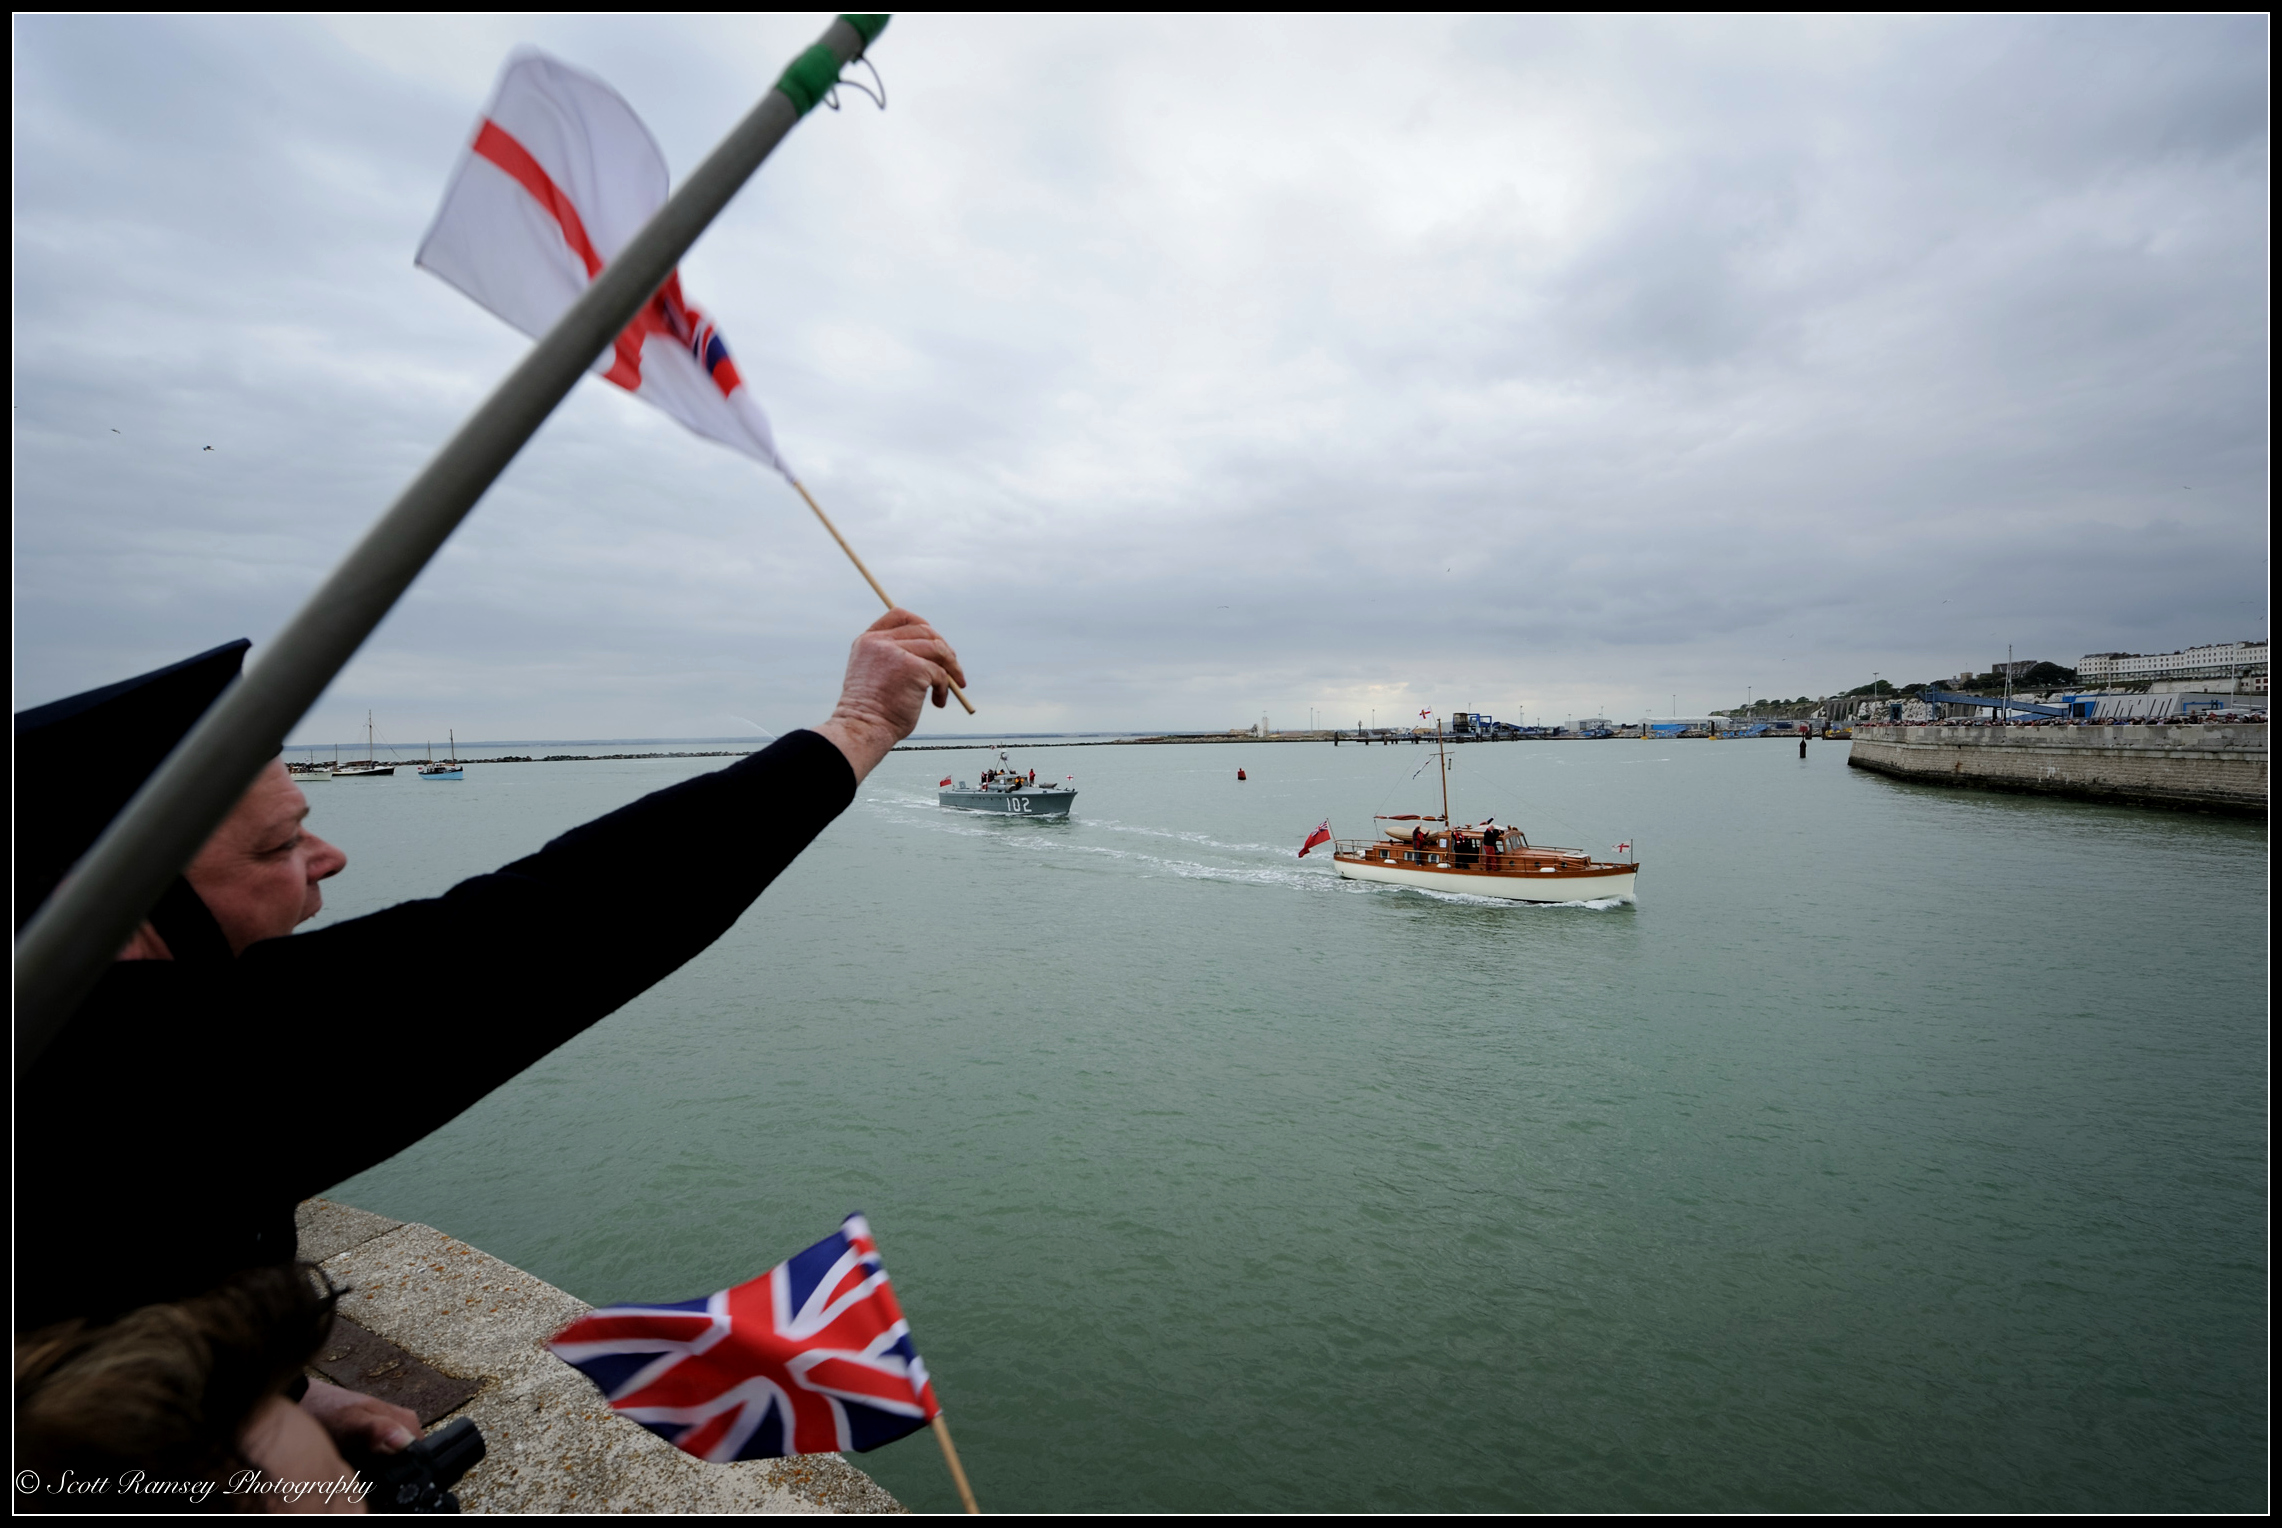 Spectators wave flags and cheer asthe Dunkirk Little Ships, the 1937Motor Torpedo Boat 102and Hilfranor a 1935 motor yacht,return to the Royal Harbour Marina Ramsgate during a weekend of events to commemorate the 75th anniversary of Operation Dynamo.©Scott Ramsey Photography